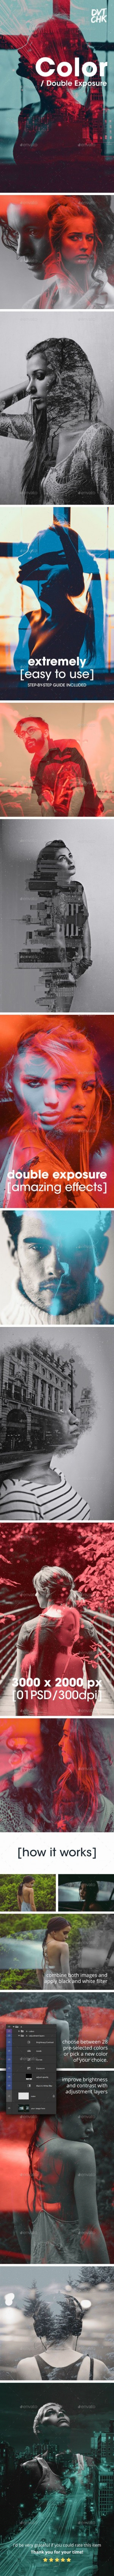 Color – Double Exposure Photoshop Photo Template | Abstract Photography | Pinterest | Doub ...